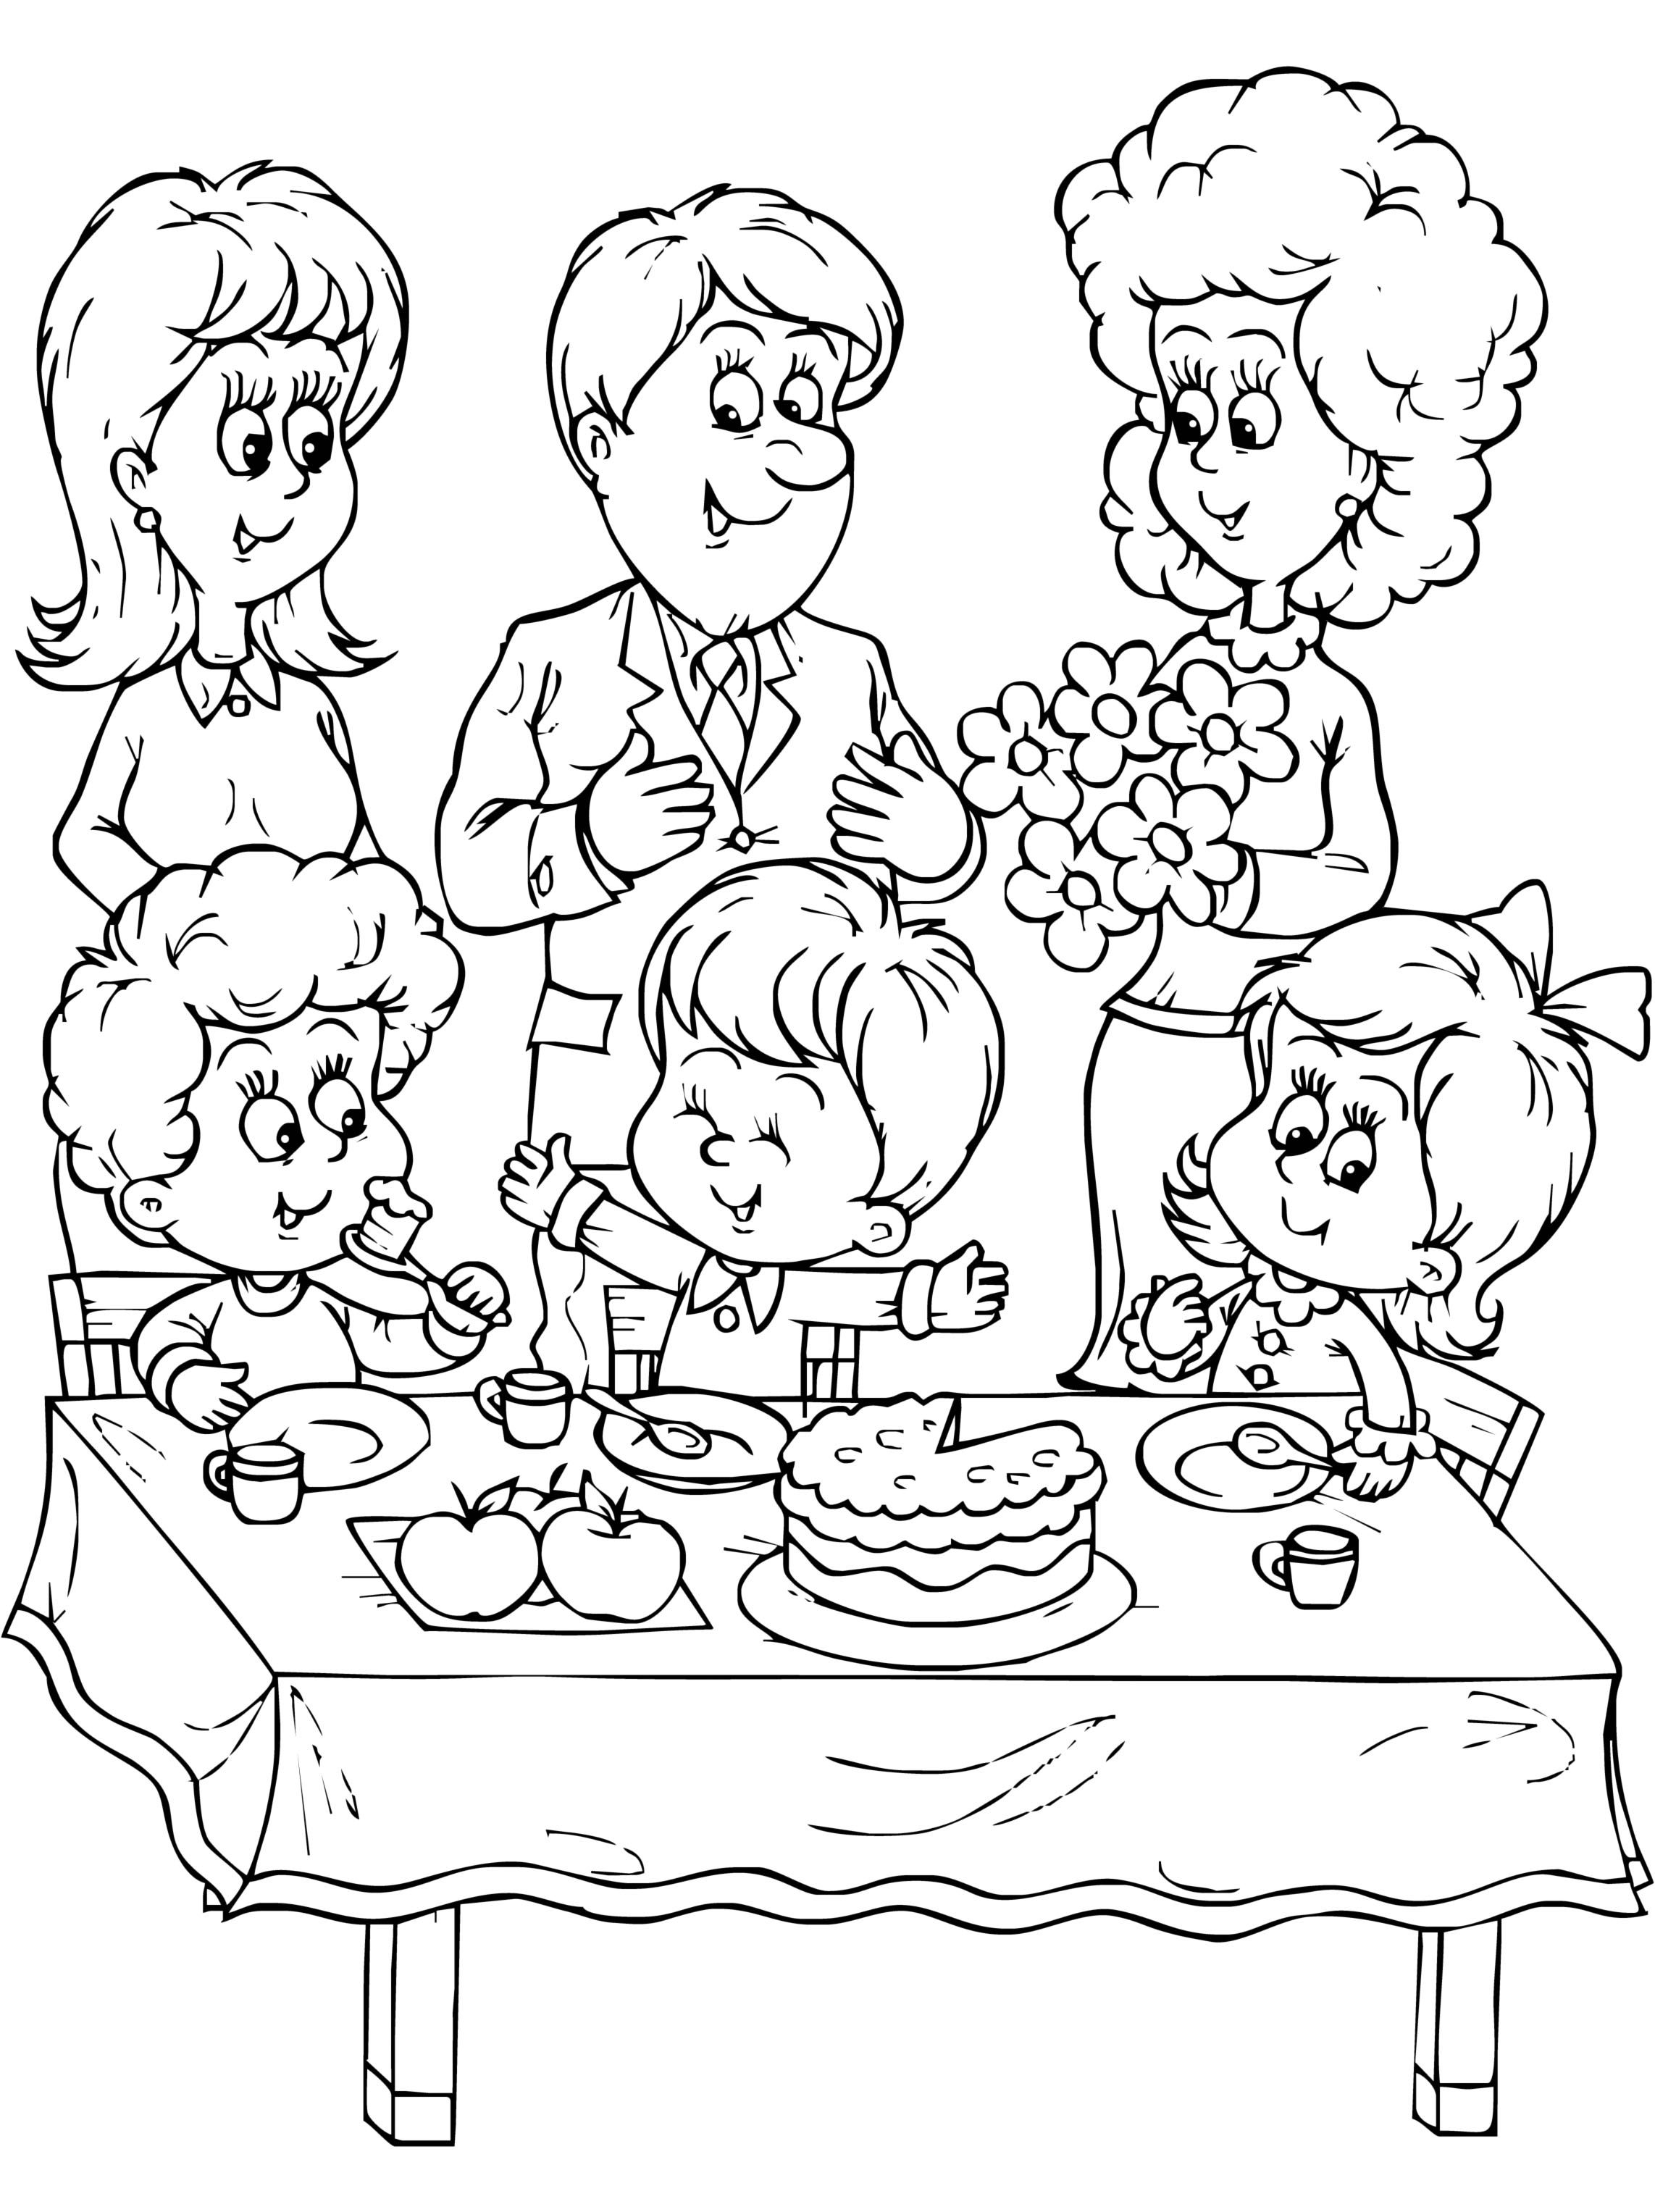 coloring picture of family family coloring pages coloring pages to download and print picture coloring of family